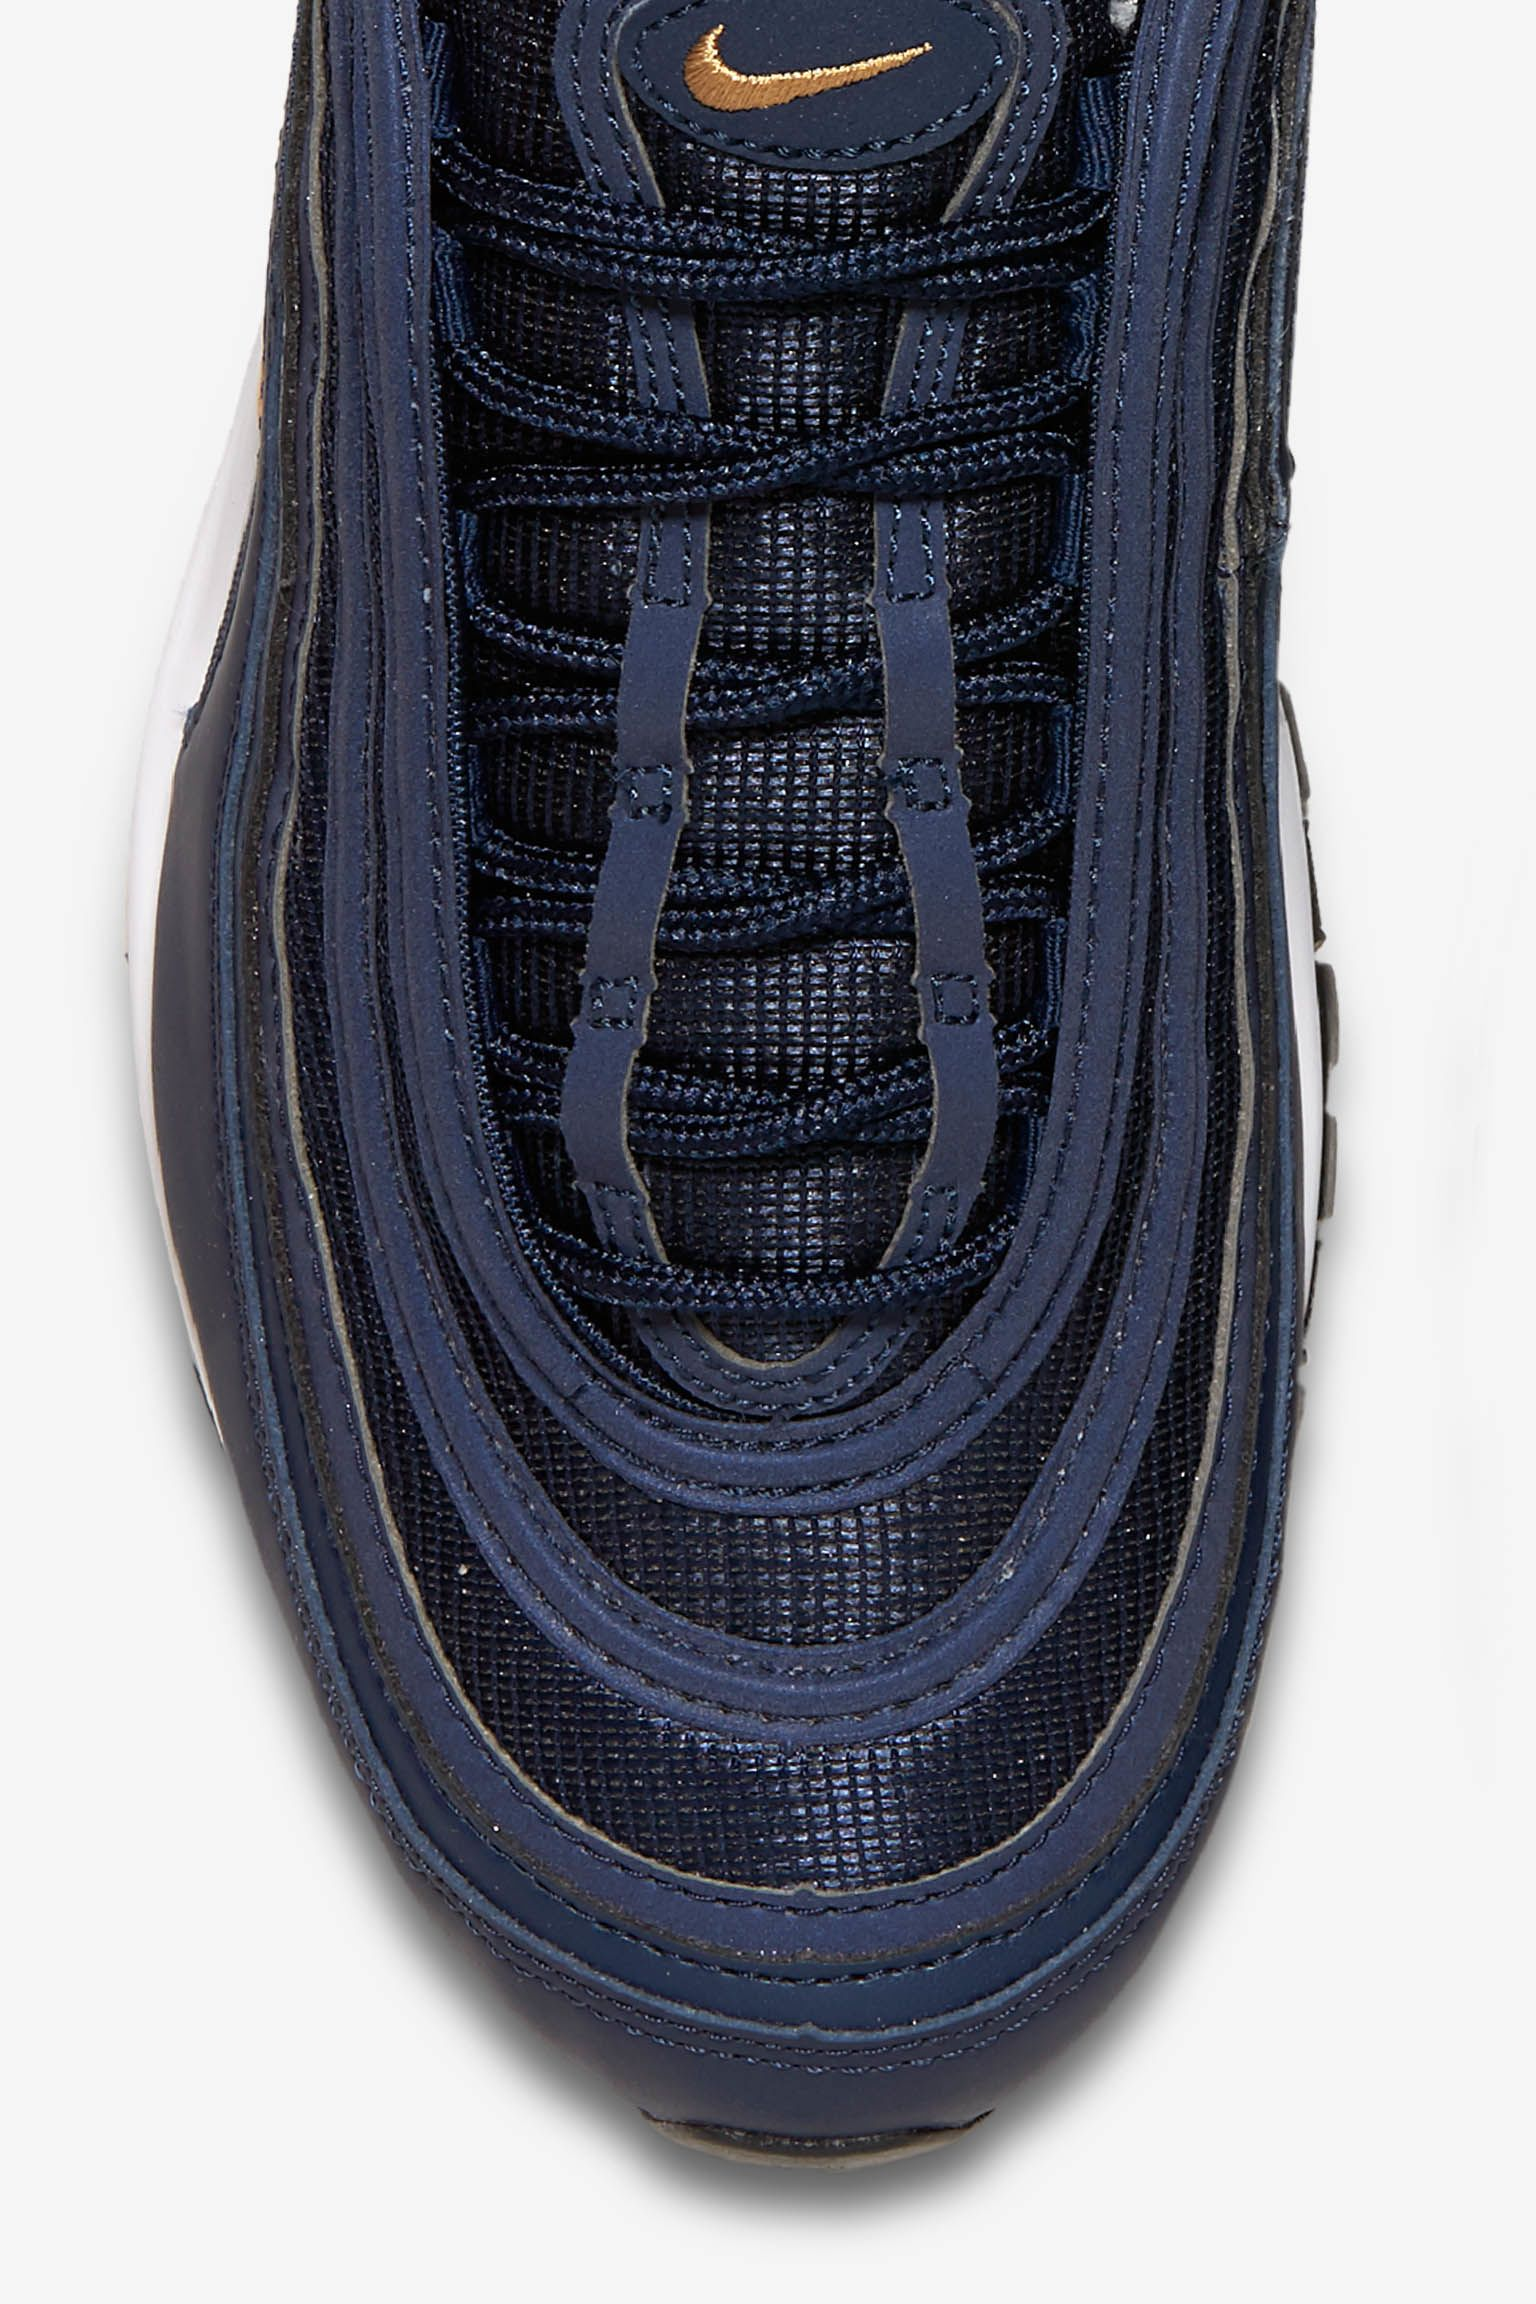 Nike AIR MAX 97 'midnight navy' blue gold 2017 Men 921826400